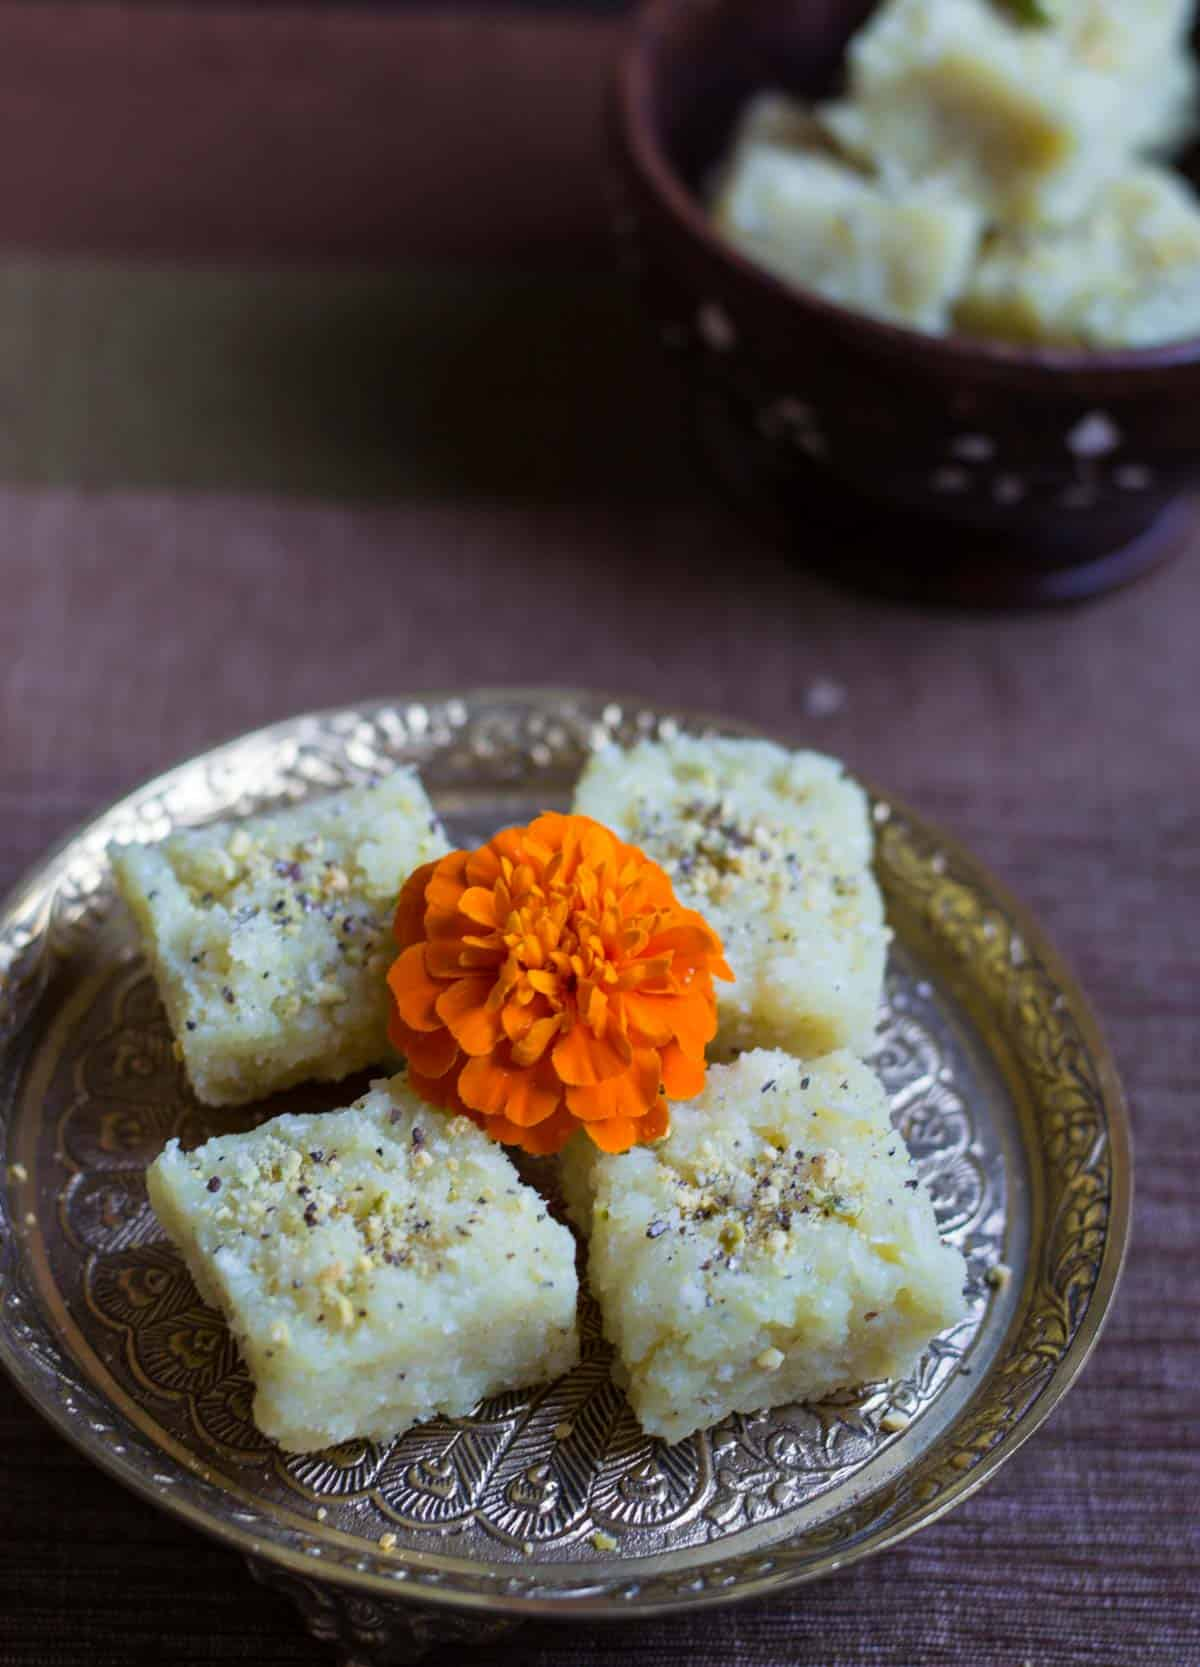 Coconut barfi served on a metal plate